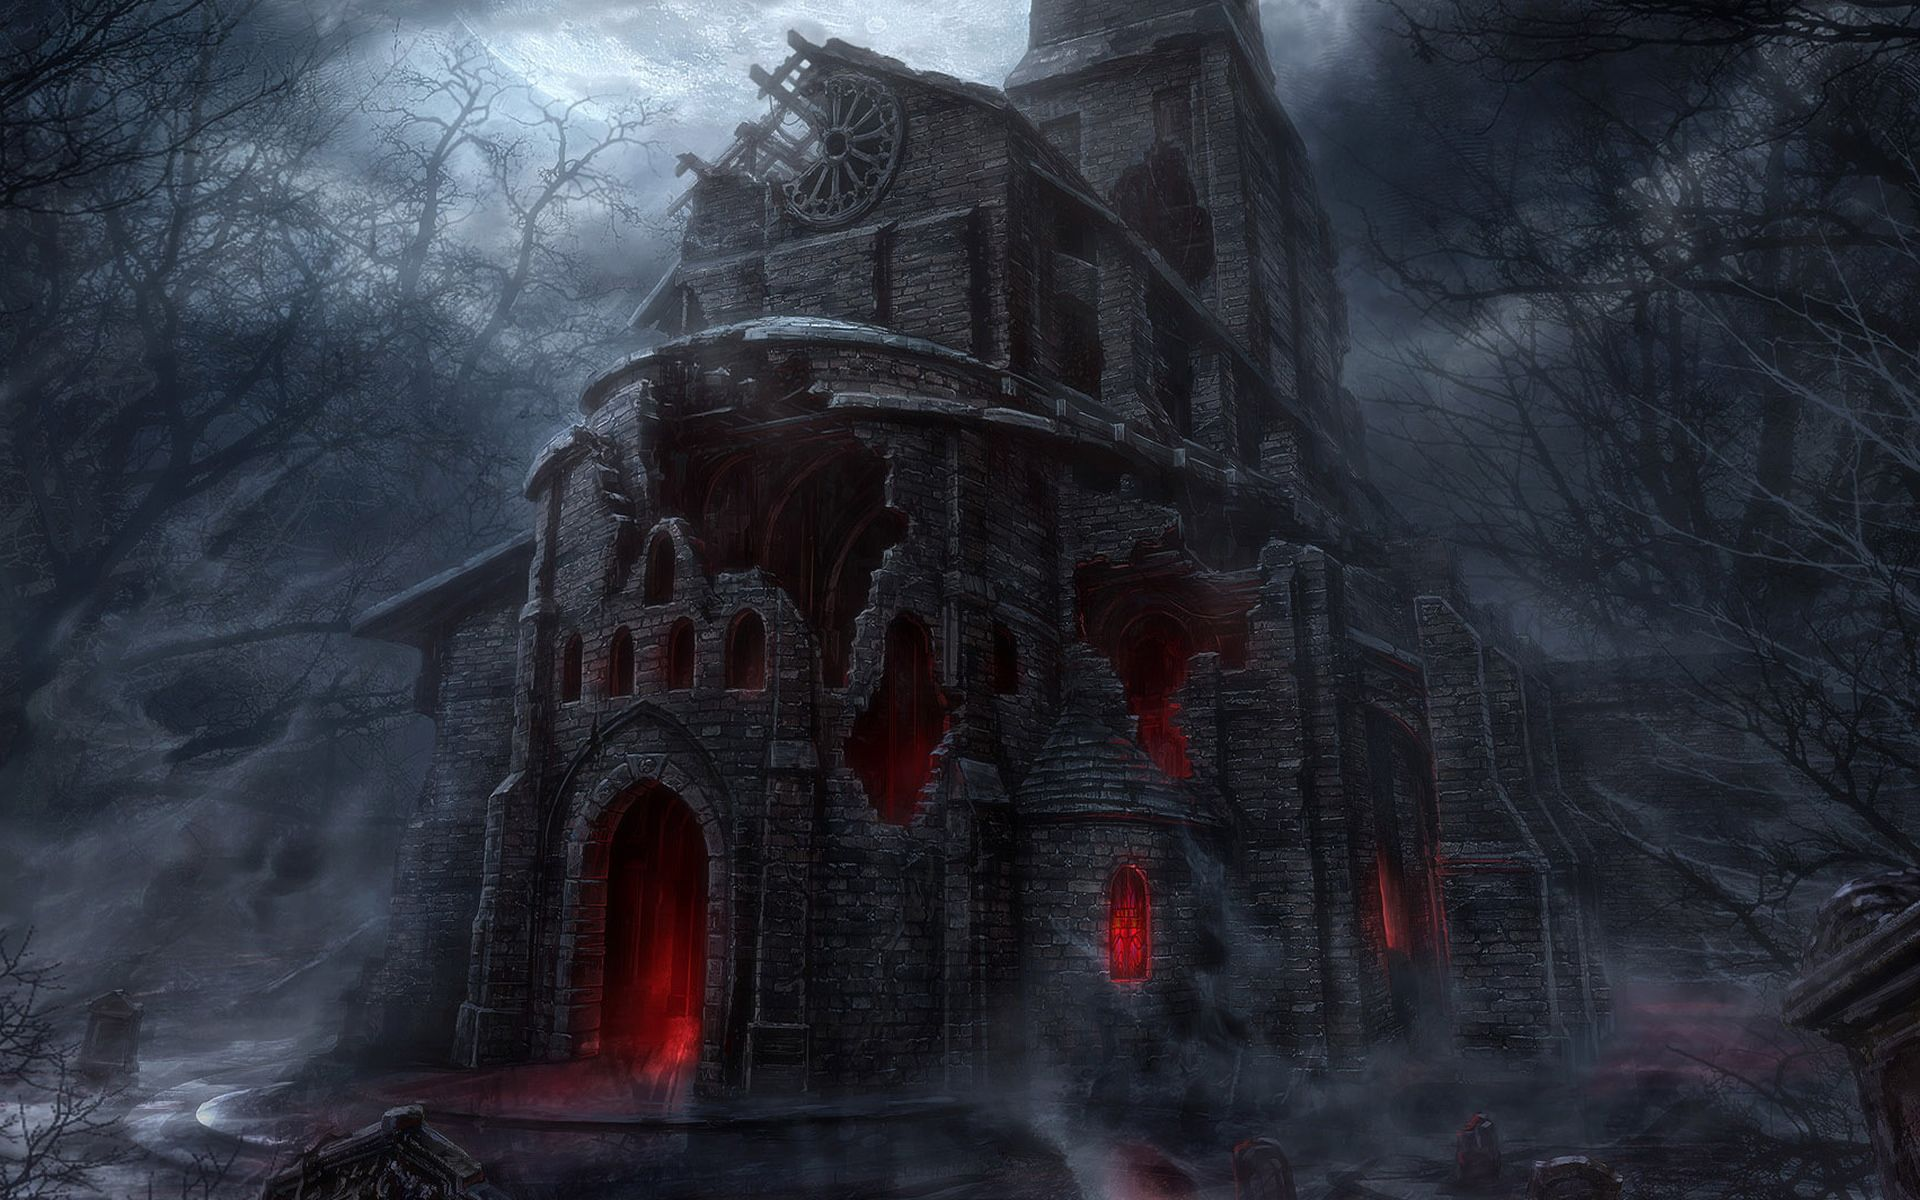 Dark Castle Wallpaper Gothic Wallpaper Scary Houses Scary Wallpaper